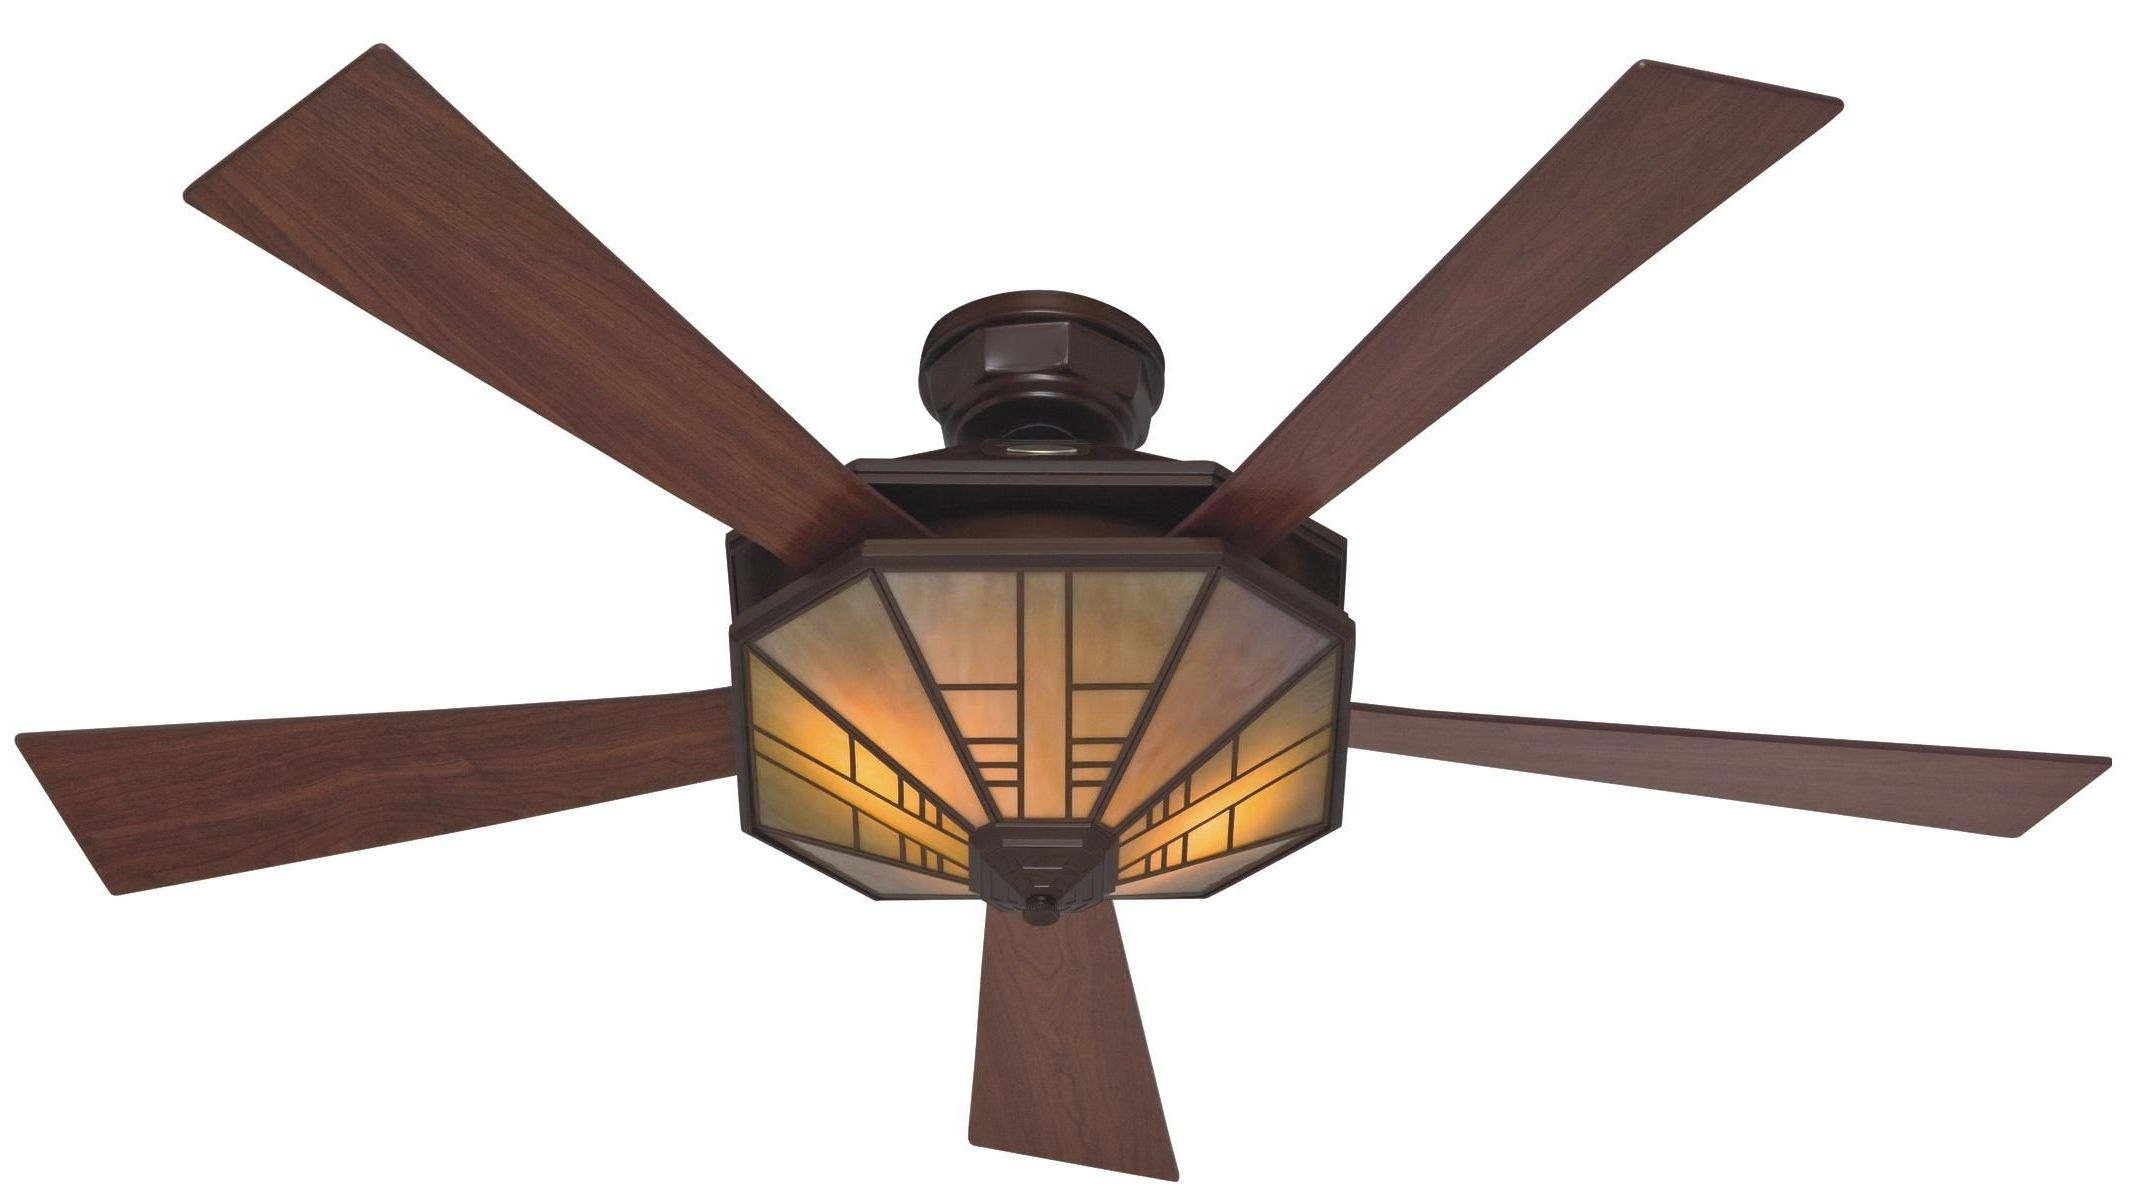 2018 Mission Style Ceiling Lights Fan With Light Fresh Kitchen Flush Throughout Mission Style Outdoor Ceiling Fans With Lights (View 5 of 20)